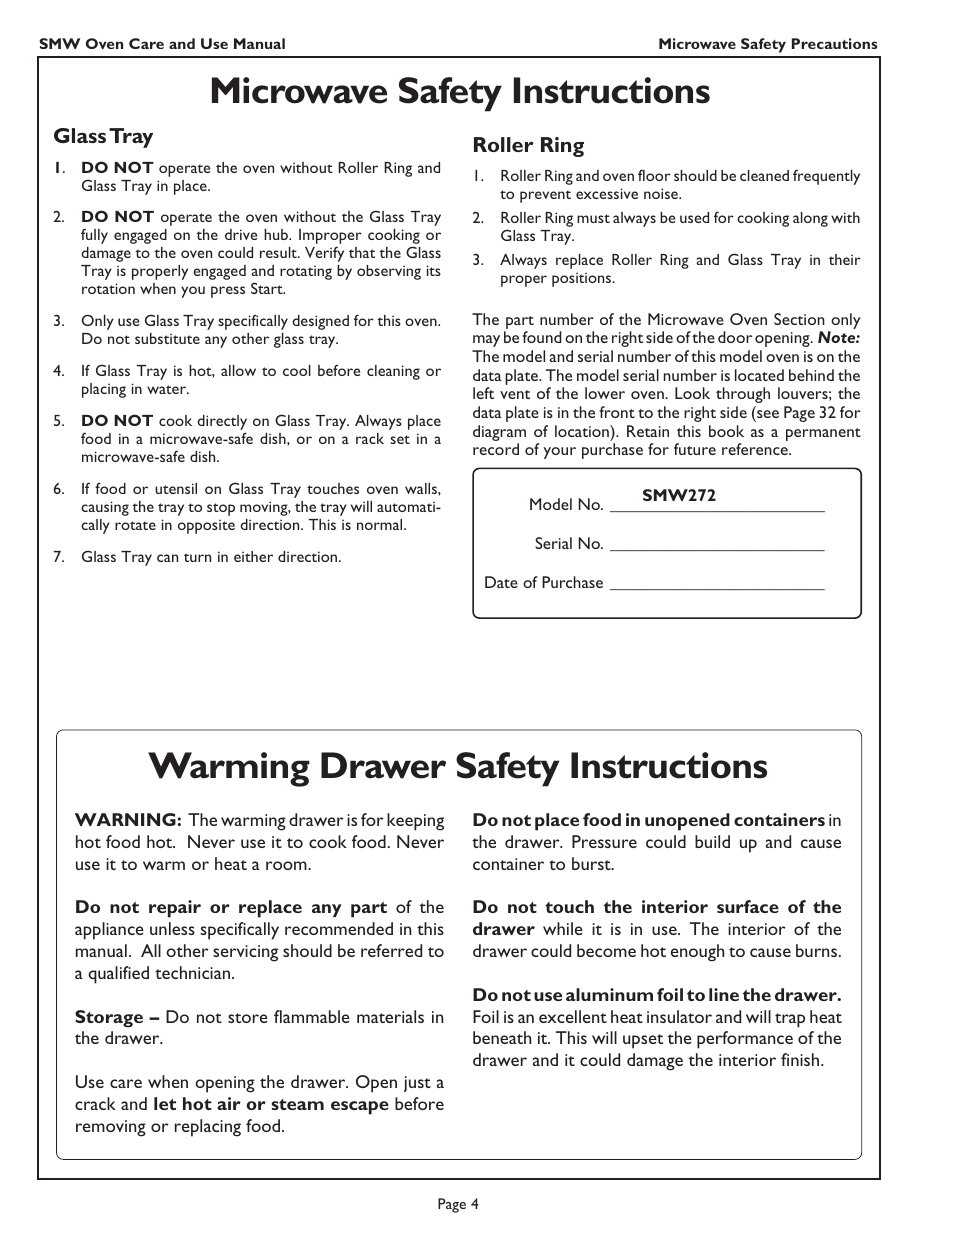 Microwave Safety Instructions Warming Drawer Safety Instructions